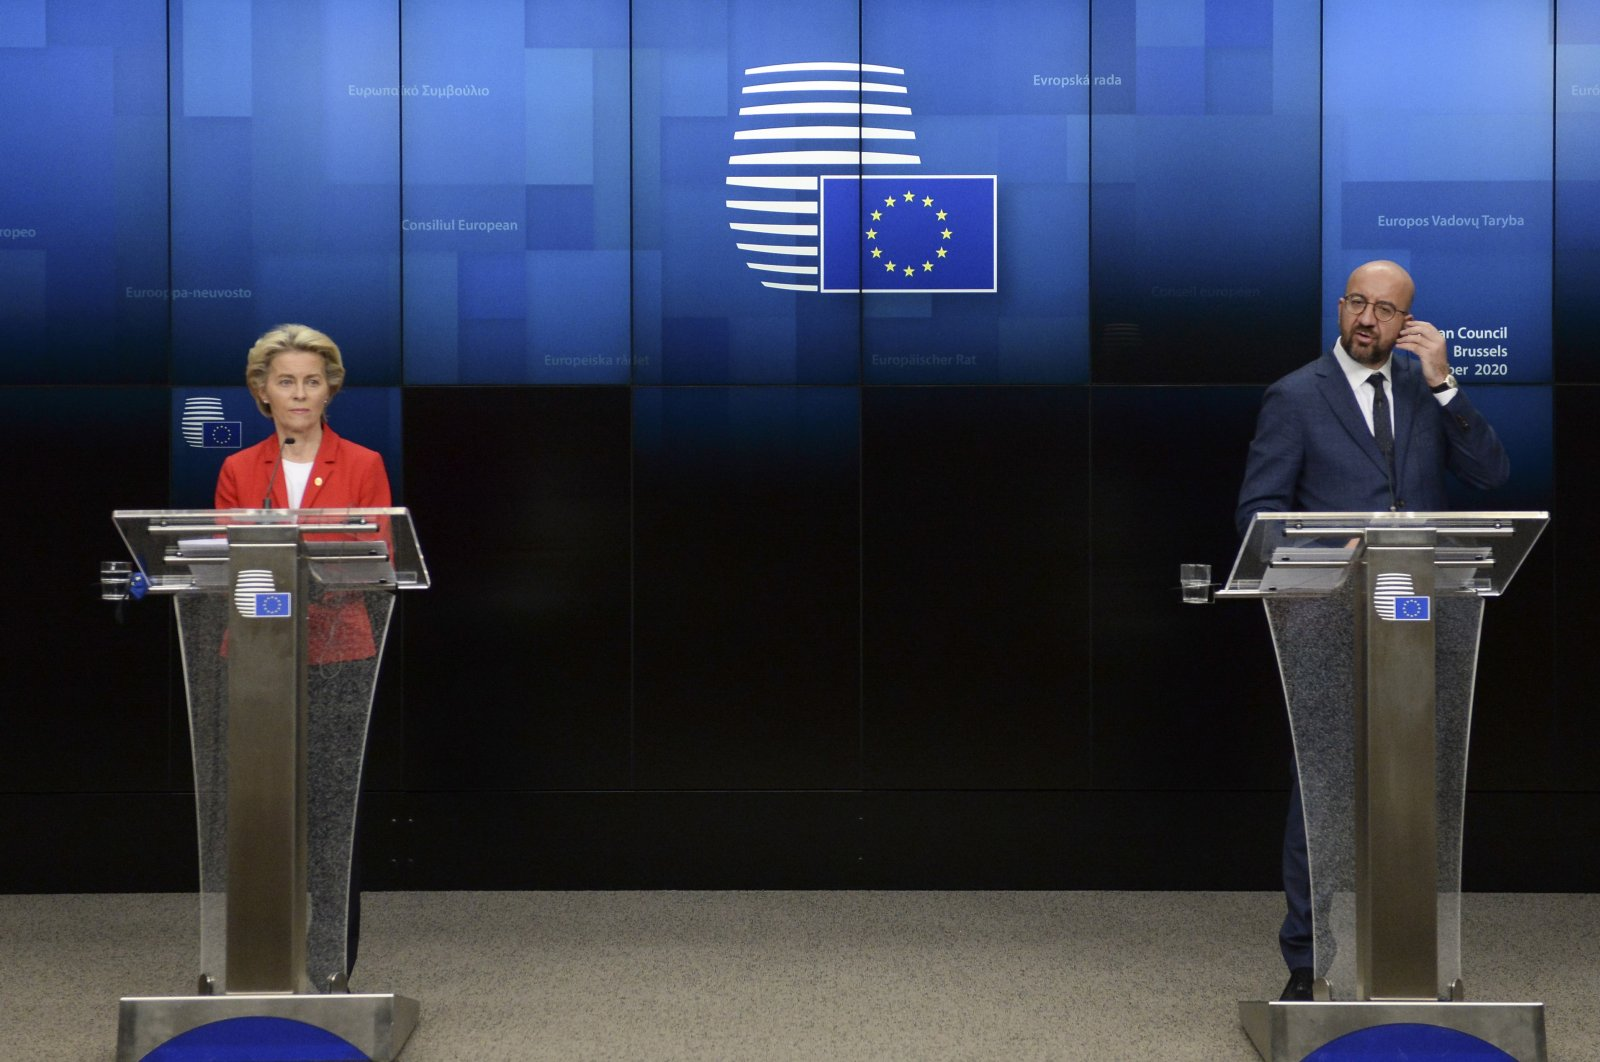 European Council President Charles Michel (R) and European Commission President Ursula von der Leyen participate in a press conference at an EU summit at the European Council building in Brussels, Oct. 2, 2020. (AP)